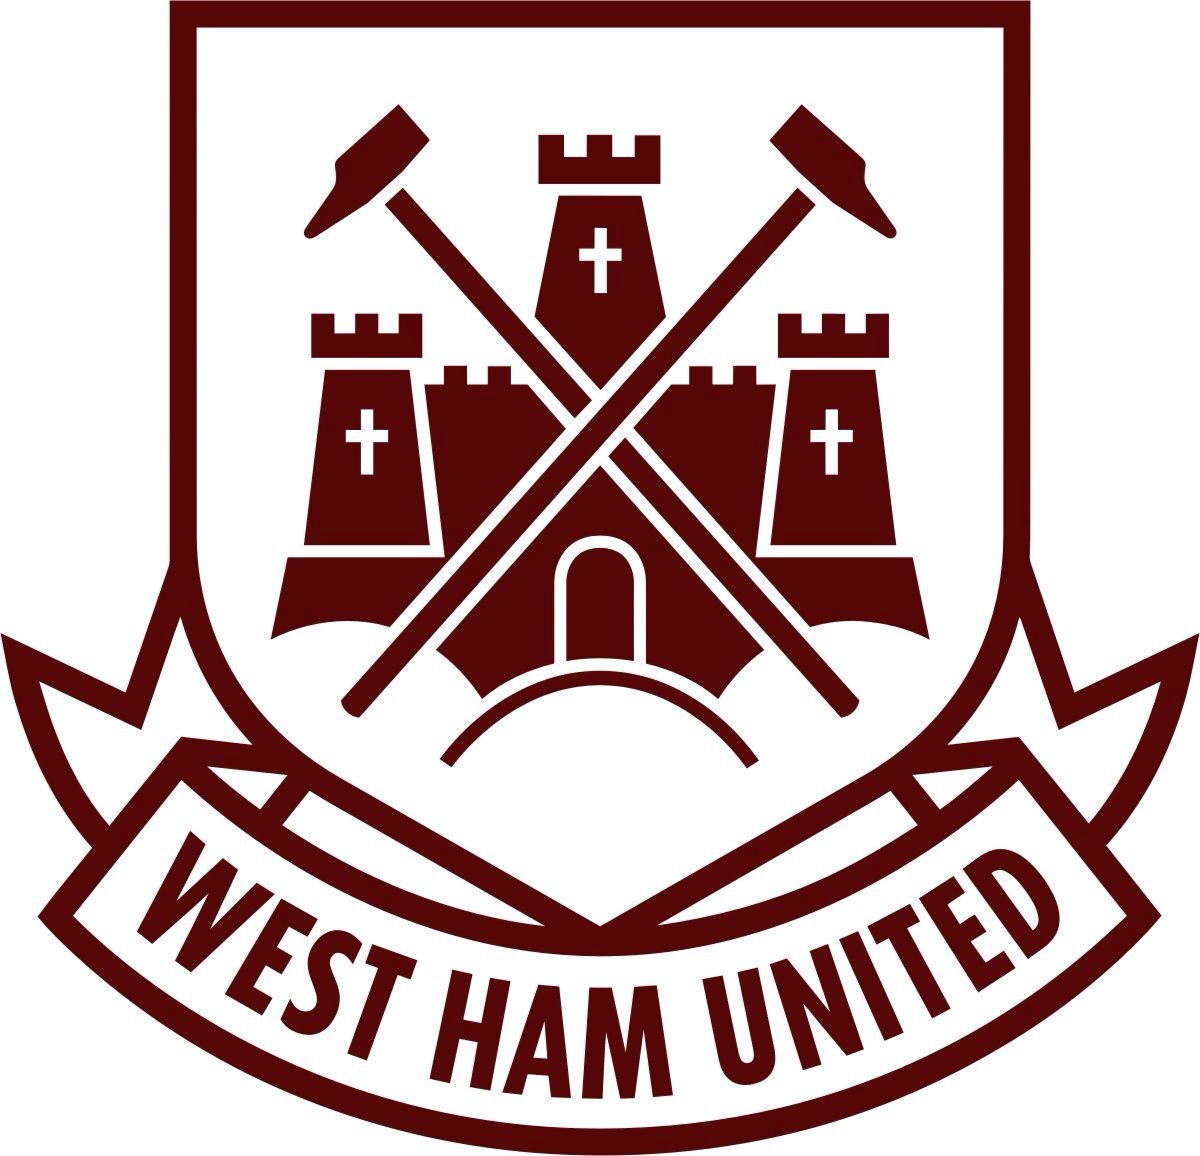 pin by on pinterest west ham west ham united fc and football soccer. Black Bedroom Furniture Sets. Home Design Ideas